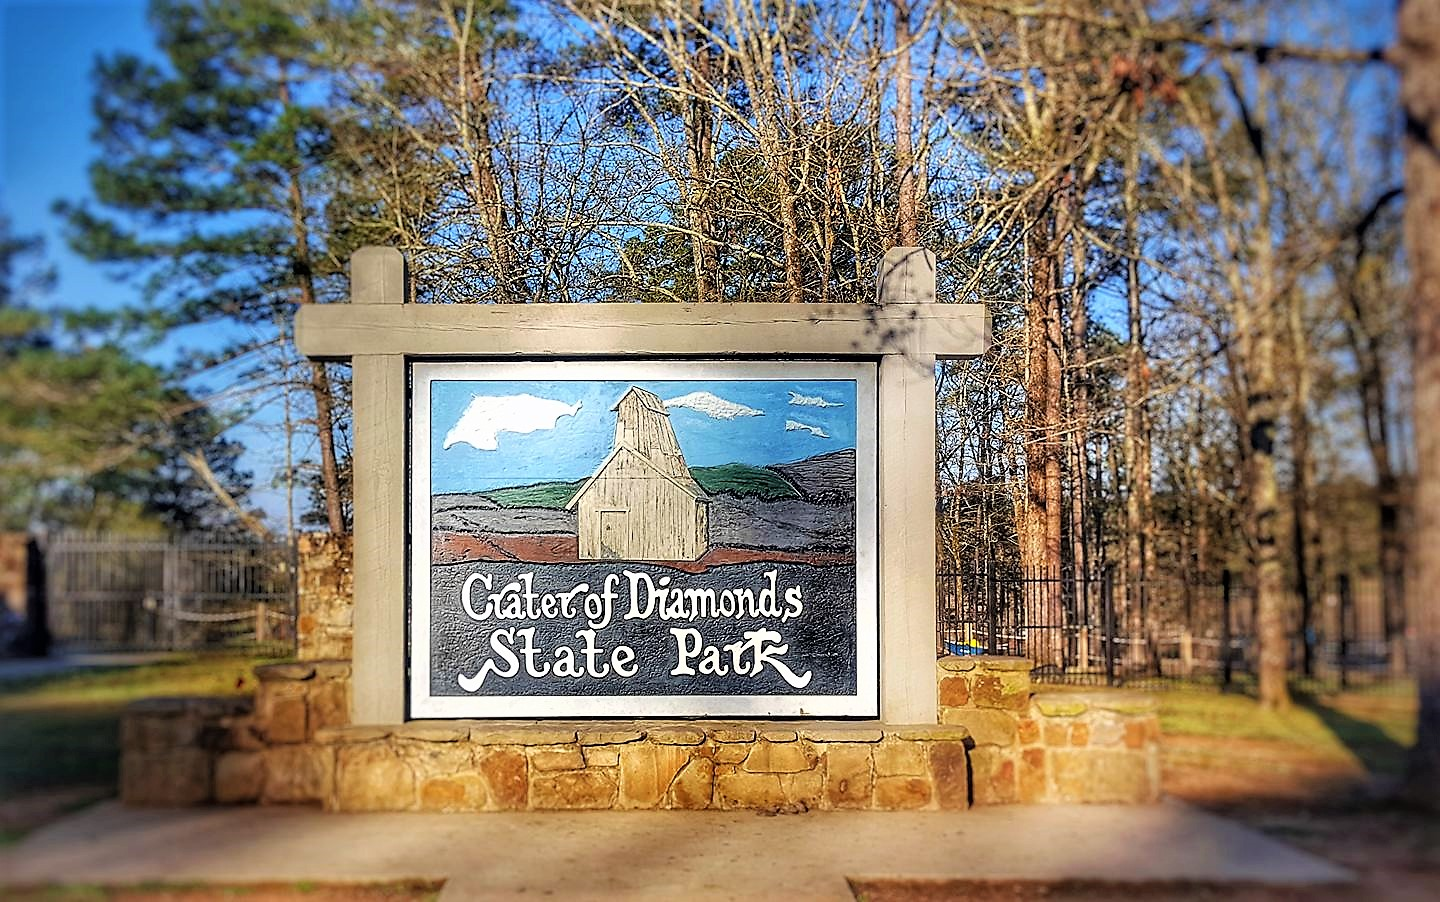 Bucket List #376- search for gems at Crater of Diamonds State Park in Murfreesboro, Arkansas